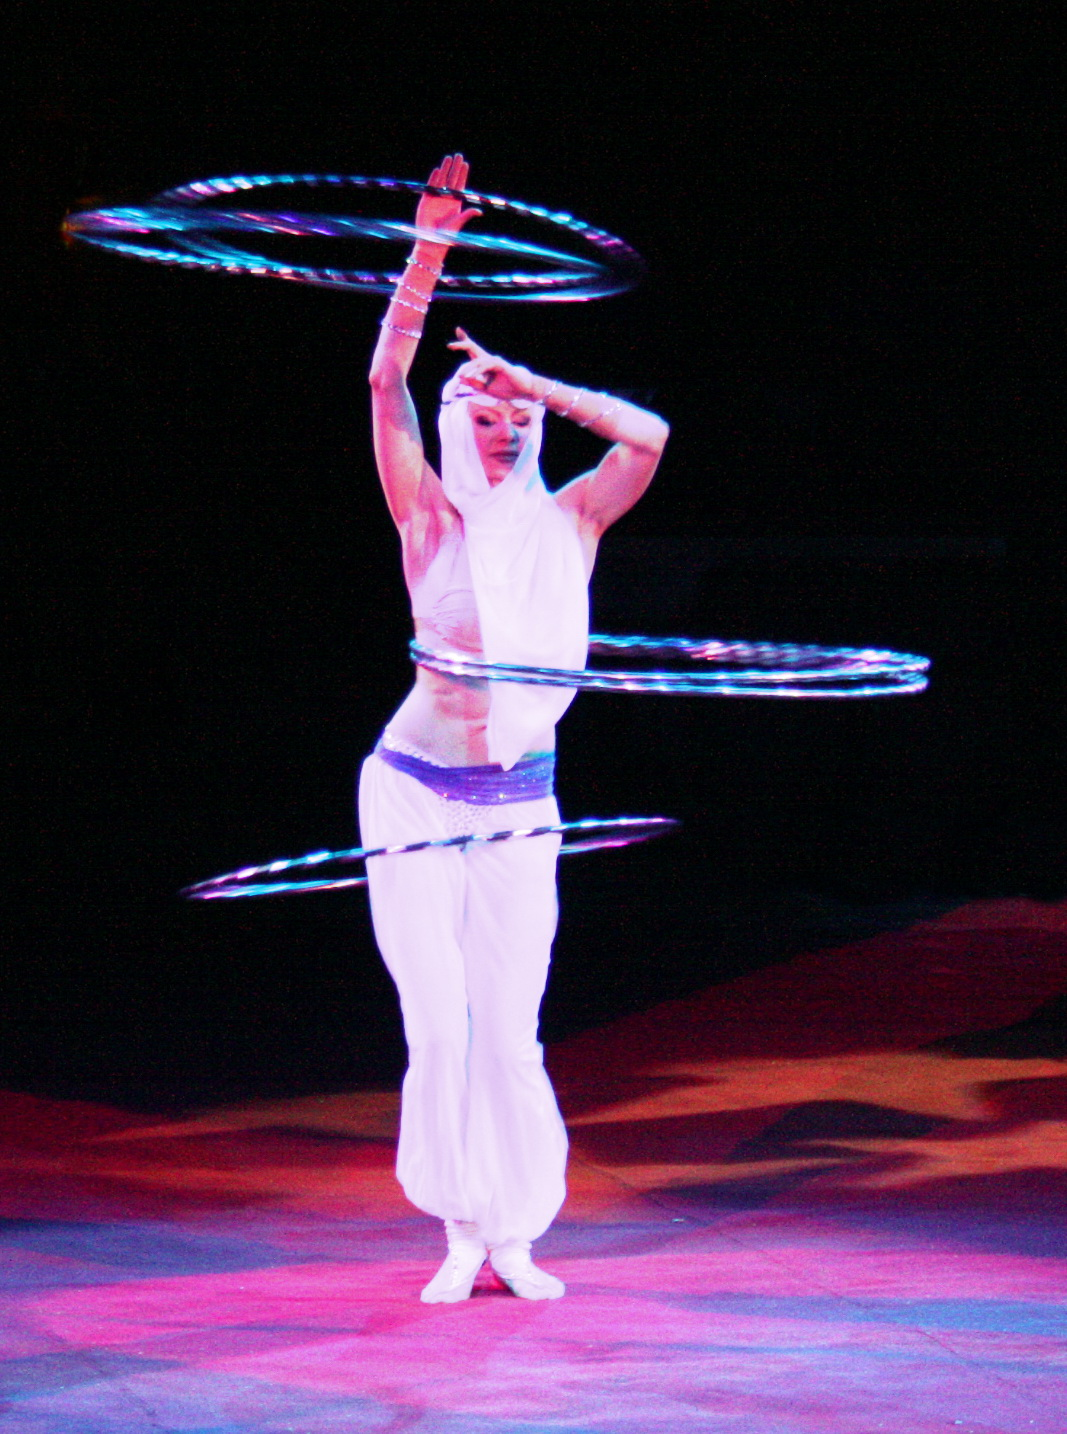 file yelena larkina hula hoop spielen aus 1001 nacht zirkusvorstellung jpg wikipedia. Black Bedroom Furniture Sets. Home Design Ideas